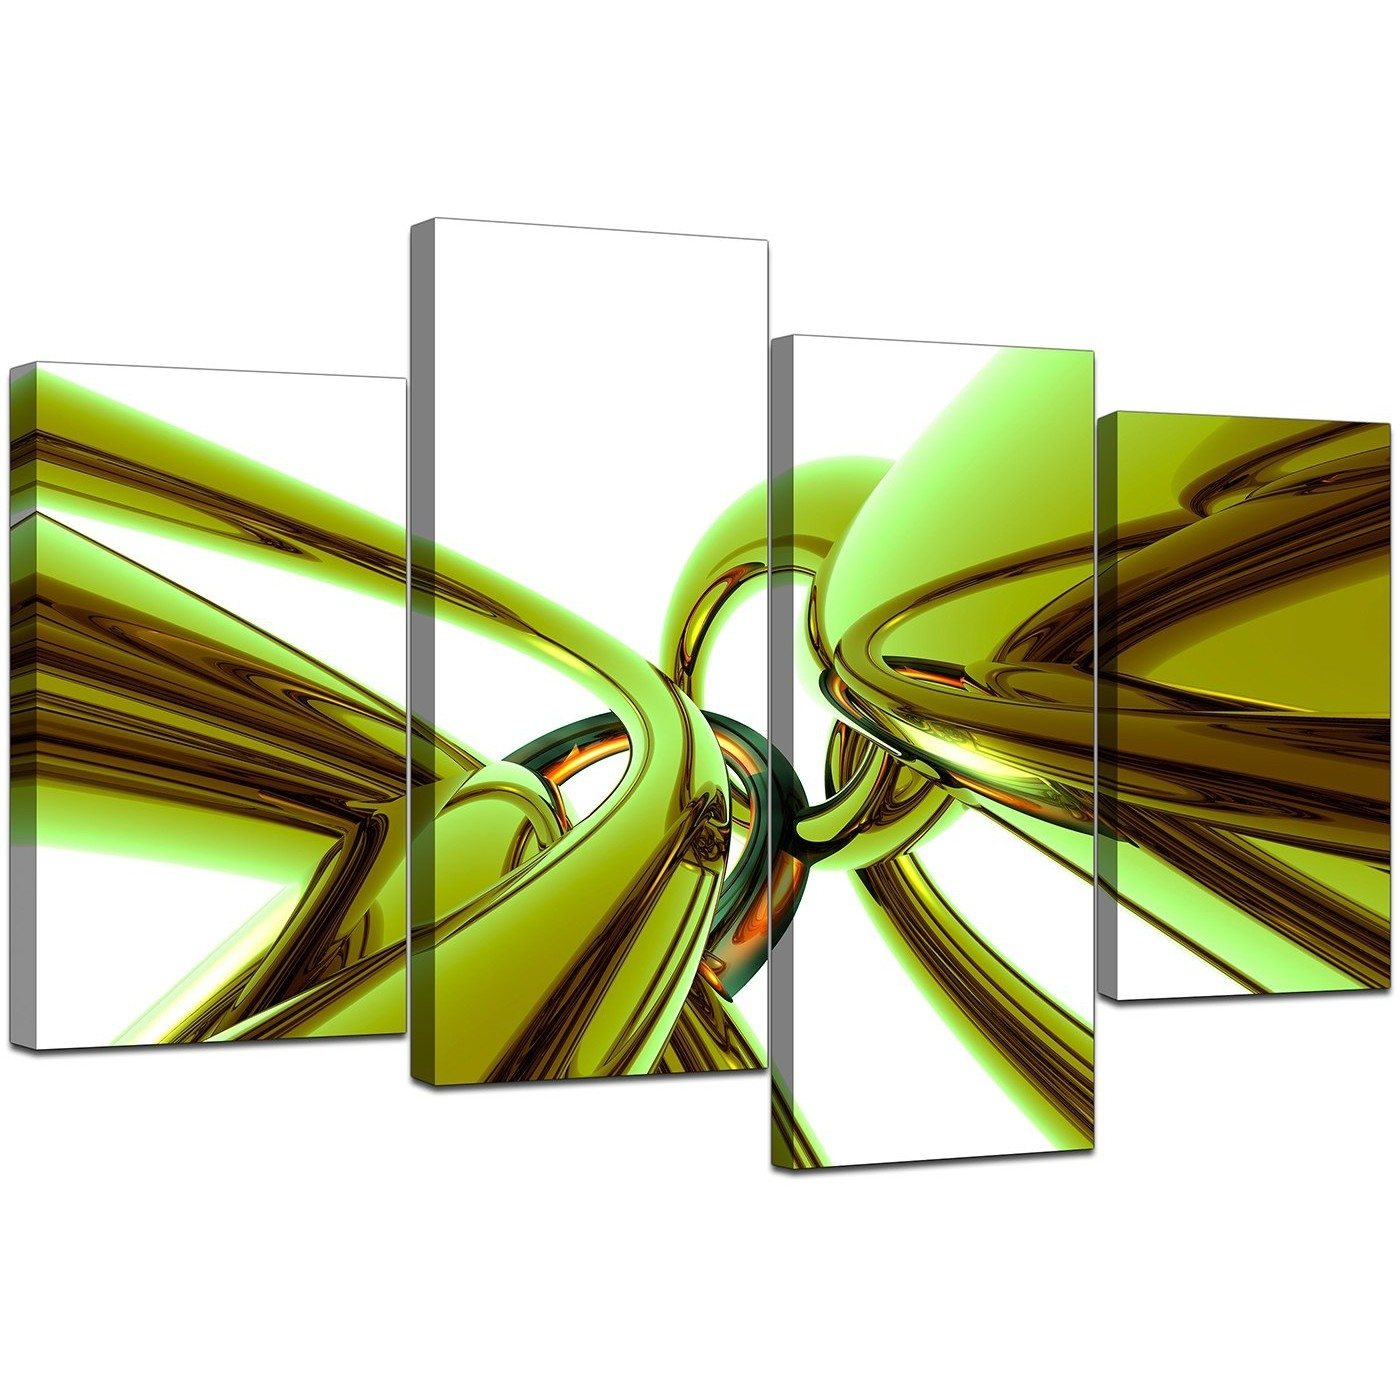 Abstract Canvas Wall Art In Green For Your Living Room – Set Of 4 Pertaining To Newest Green Abstract Wall Art (View 6 of 20)